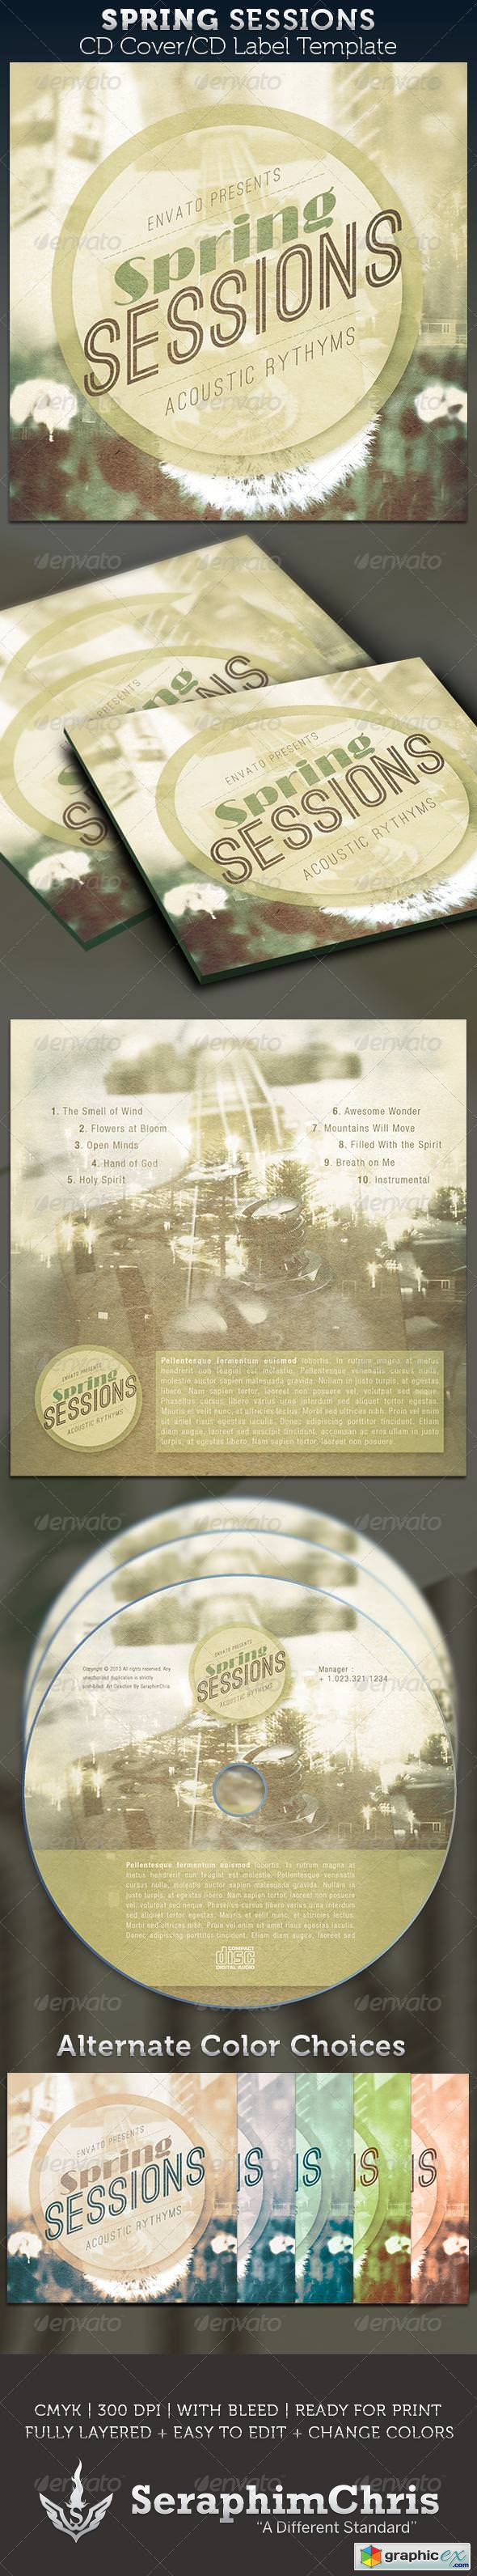 Spring Sessions CD Cover Artwork Template